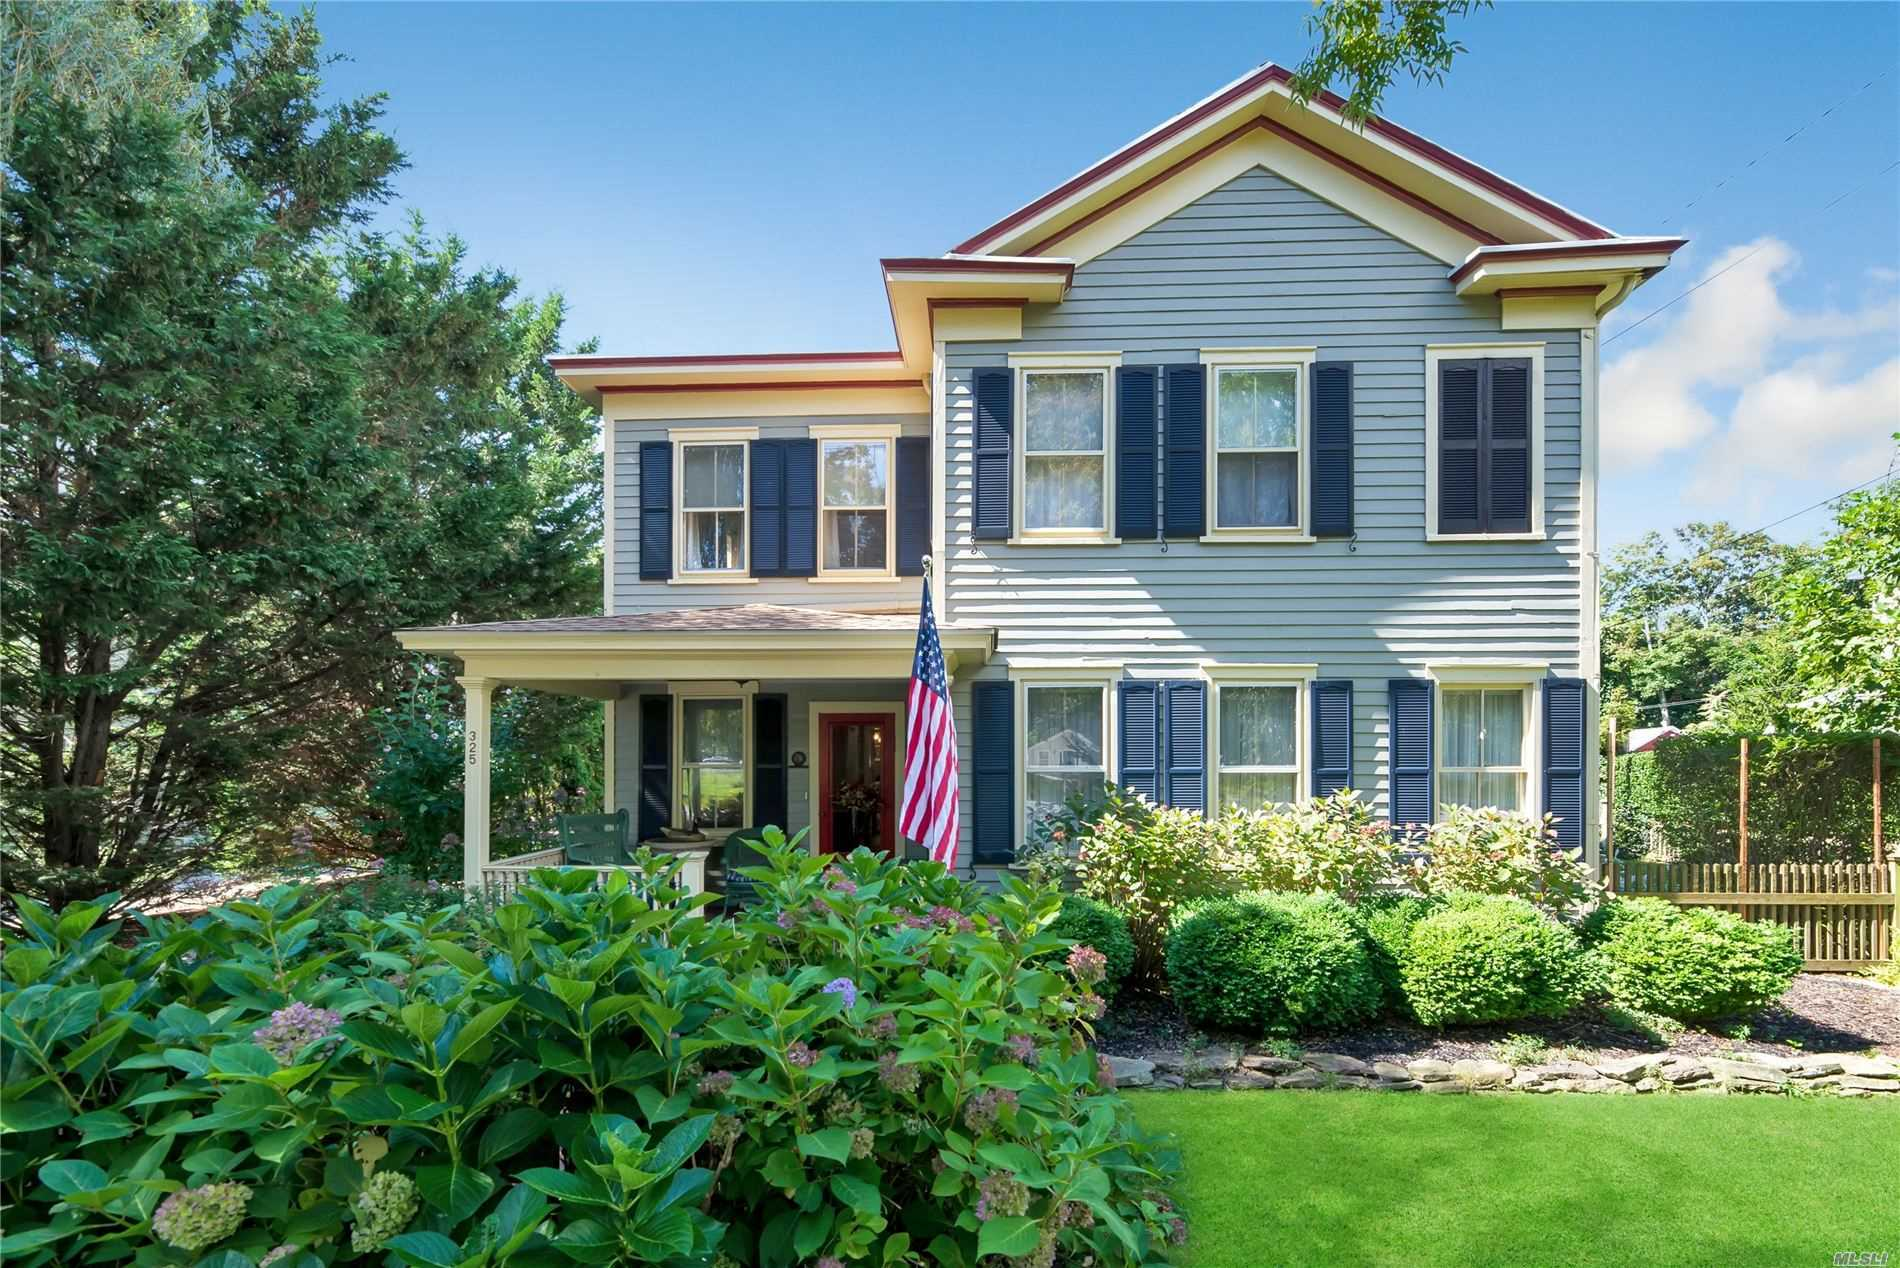 Elegant 1884 Historic Home With Original Details & Exceptional Character Throughout, Spacious Custom Chef's Kitchen Opens To Living Room W Fireplace, Leading To A Beautiful Mahogany Deck Which Overlooks Exquisite Gardens & A Gazebo In The Most Serene & Private Setting & Also An Enclosed Outdoor Shower. Close To All, Including Town, Jitney/Train, Founders Landing Beach & Horton's Pt Lighthouse Park. Come See This Remarkable Home, Which Includes Many Upgrades & Has Been Beautifully Maintained!